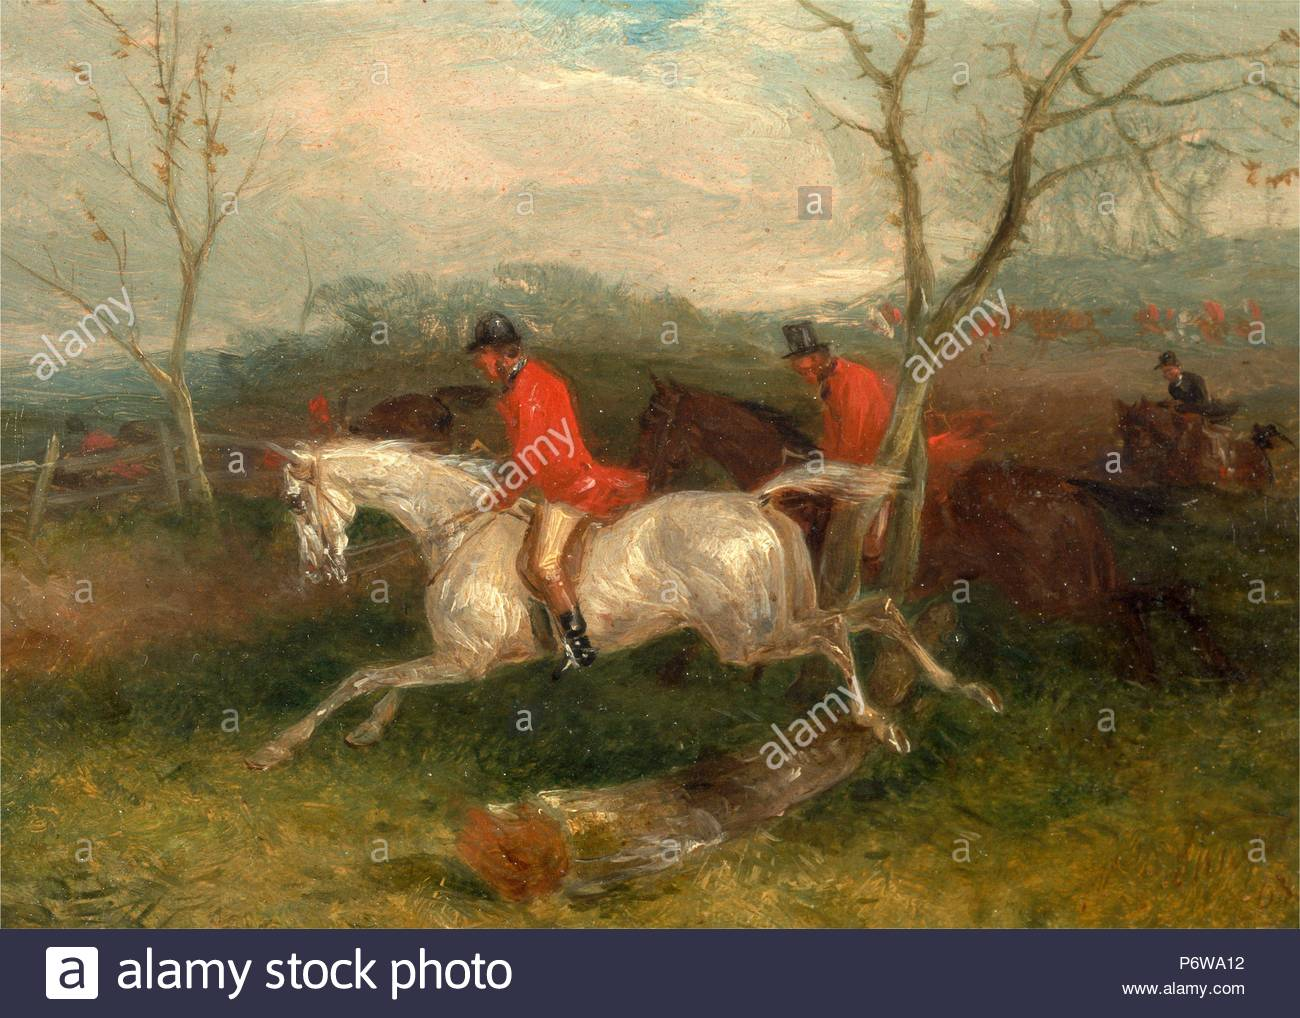 Foxhunting: Coming to a Fence (Full Cry) Signed and dated in brown paint, lower right: 'WJ Shayer | 63.', William J. Shayer, 1811-c.1885, British. - Stock Image